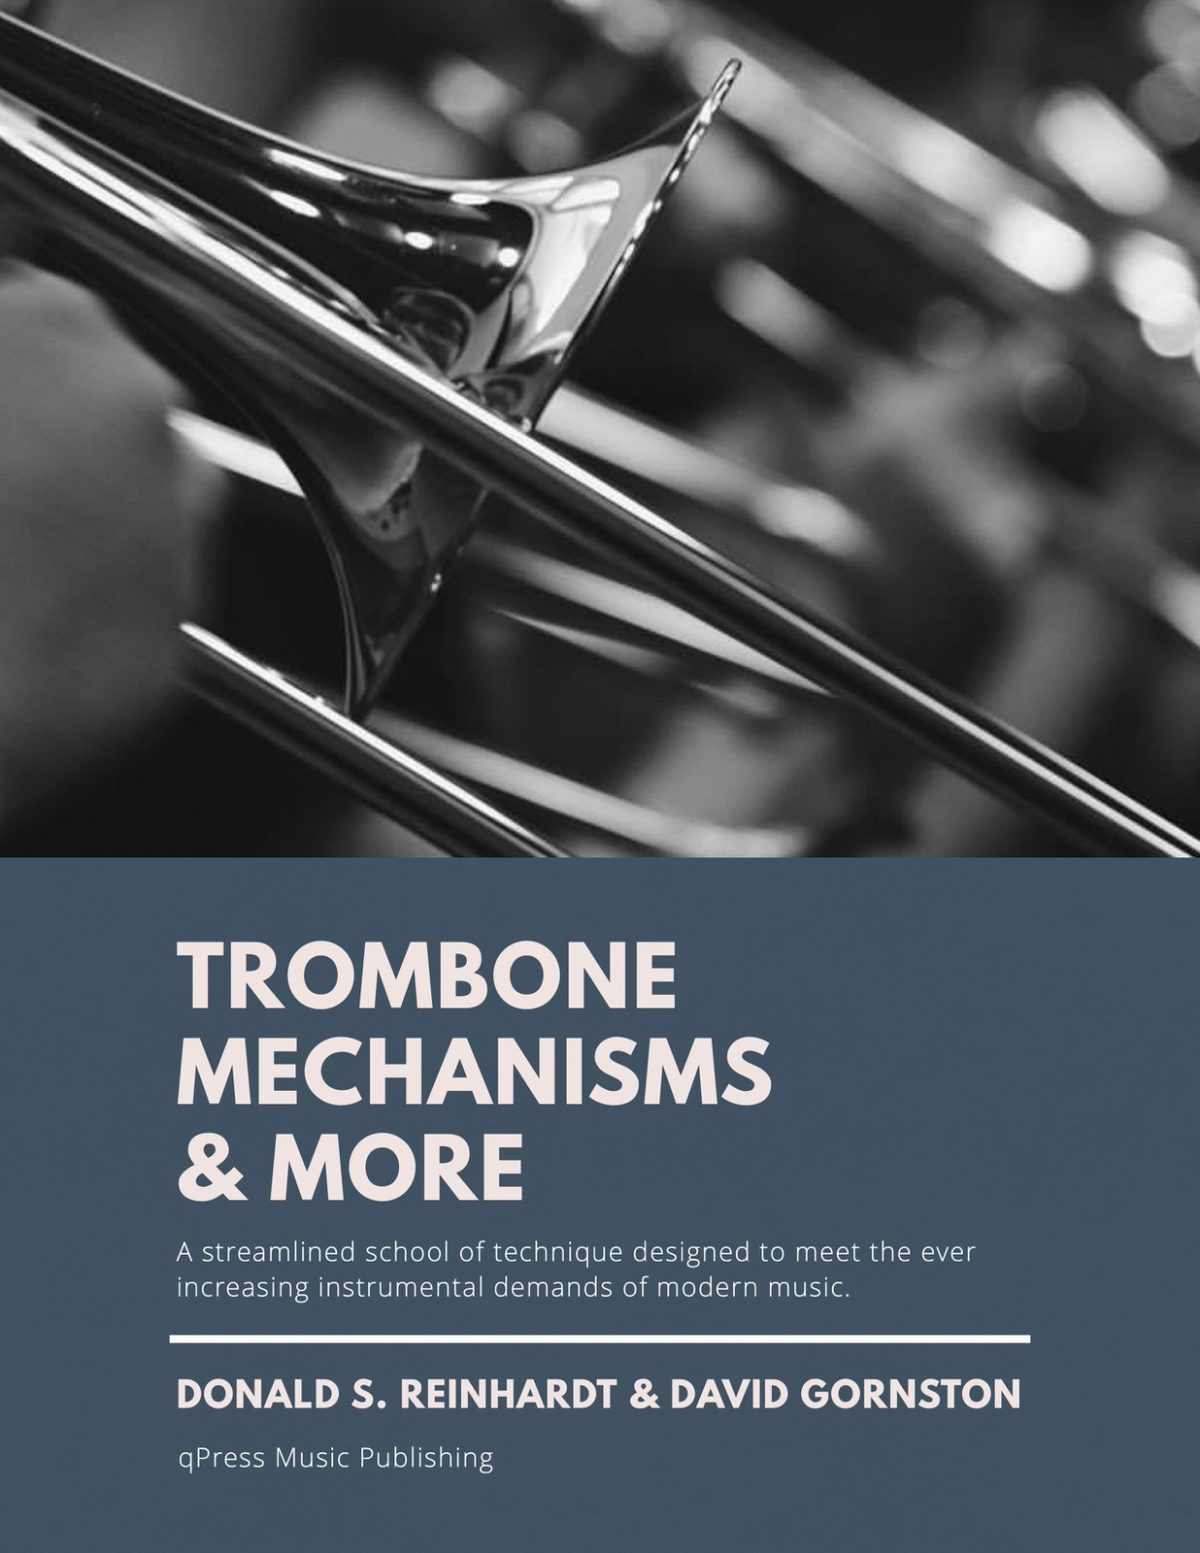 Reinhardt, Trombone Mechanisms & More-p01